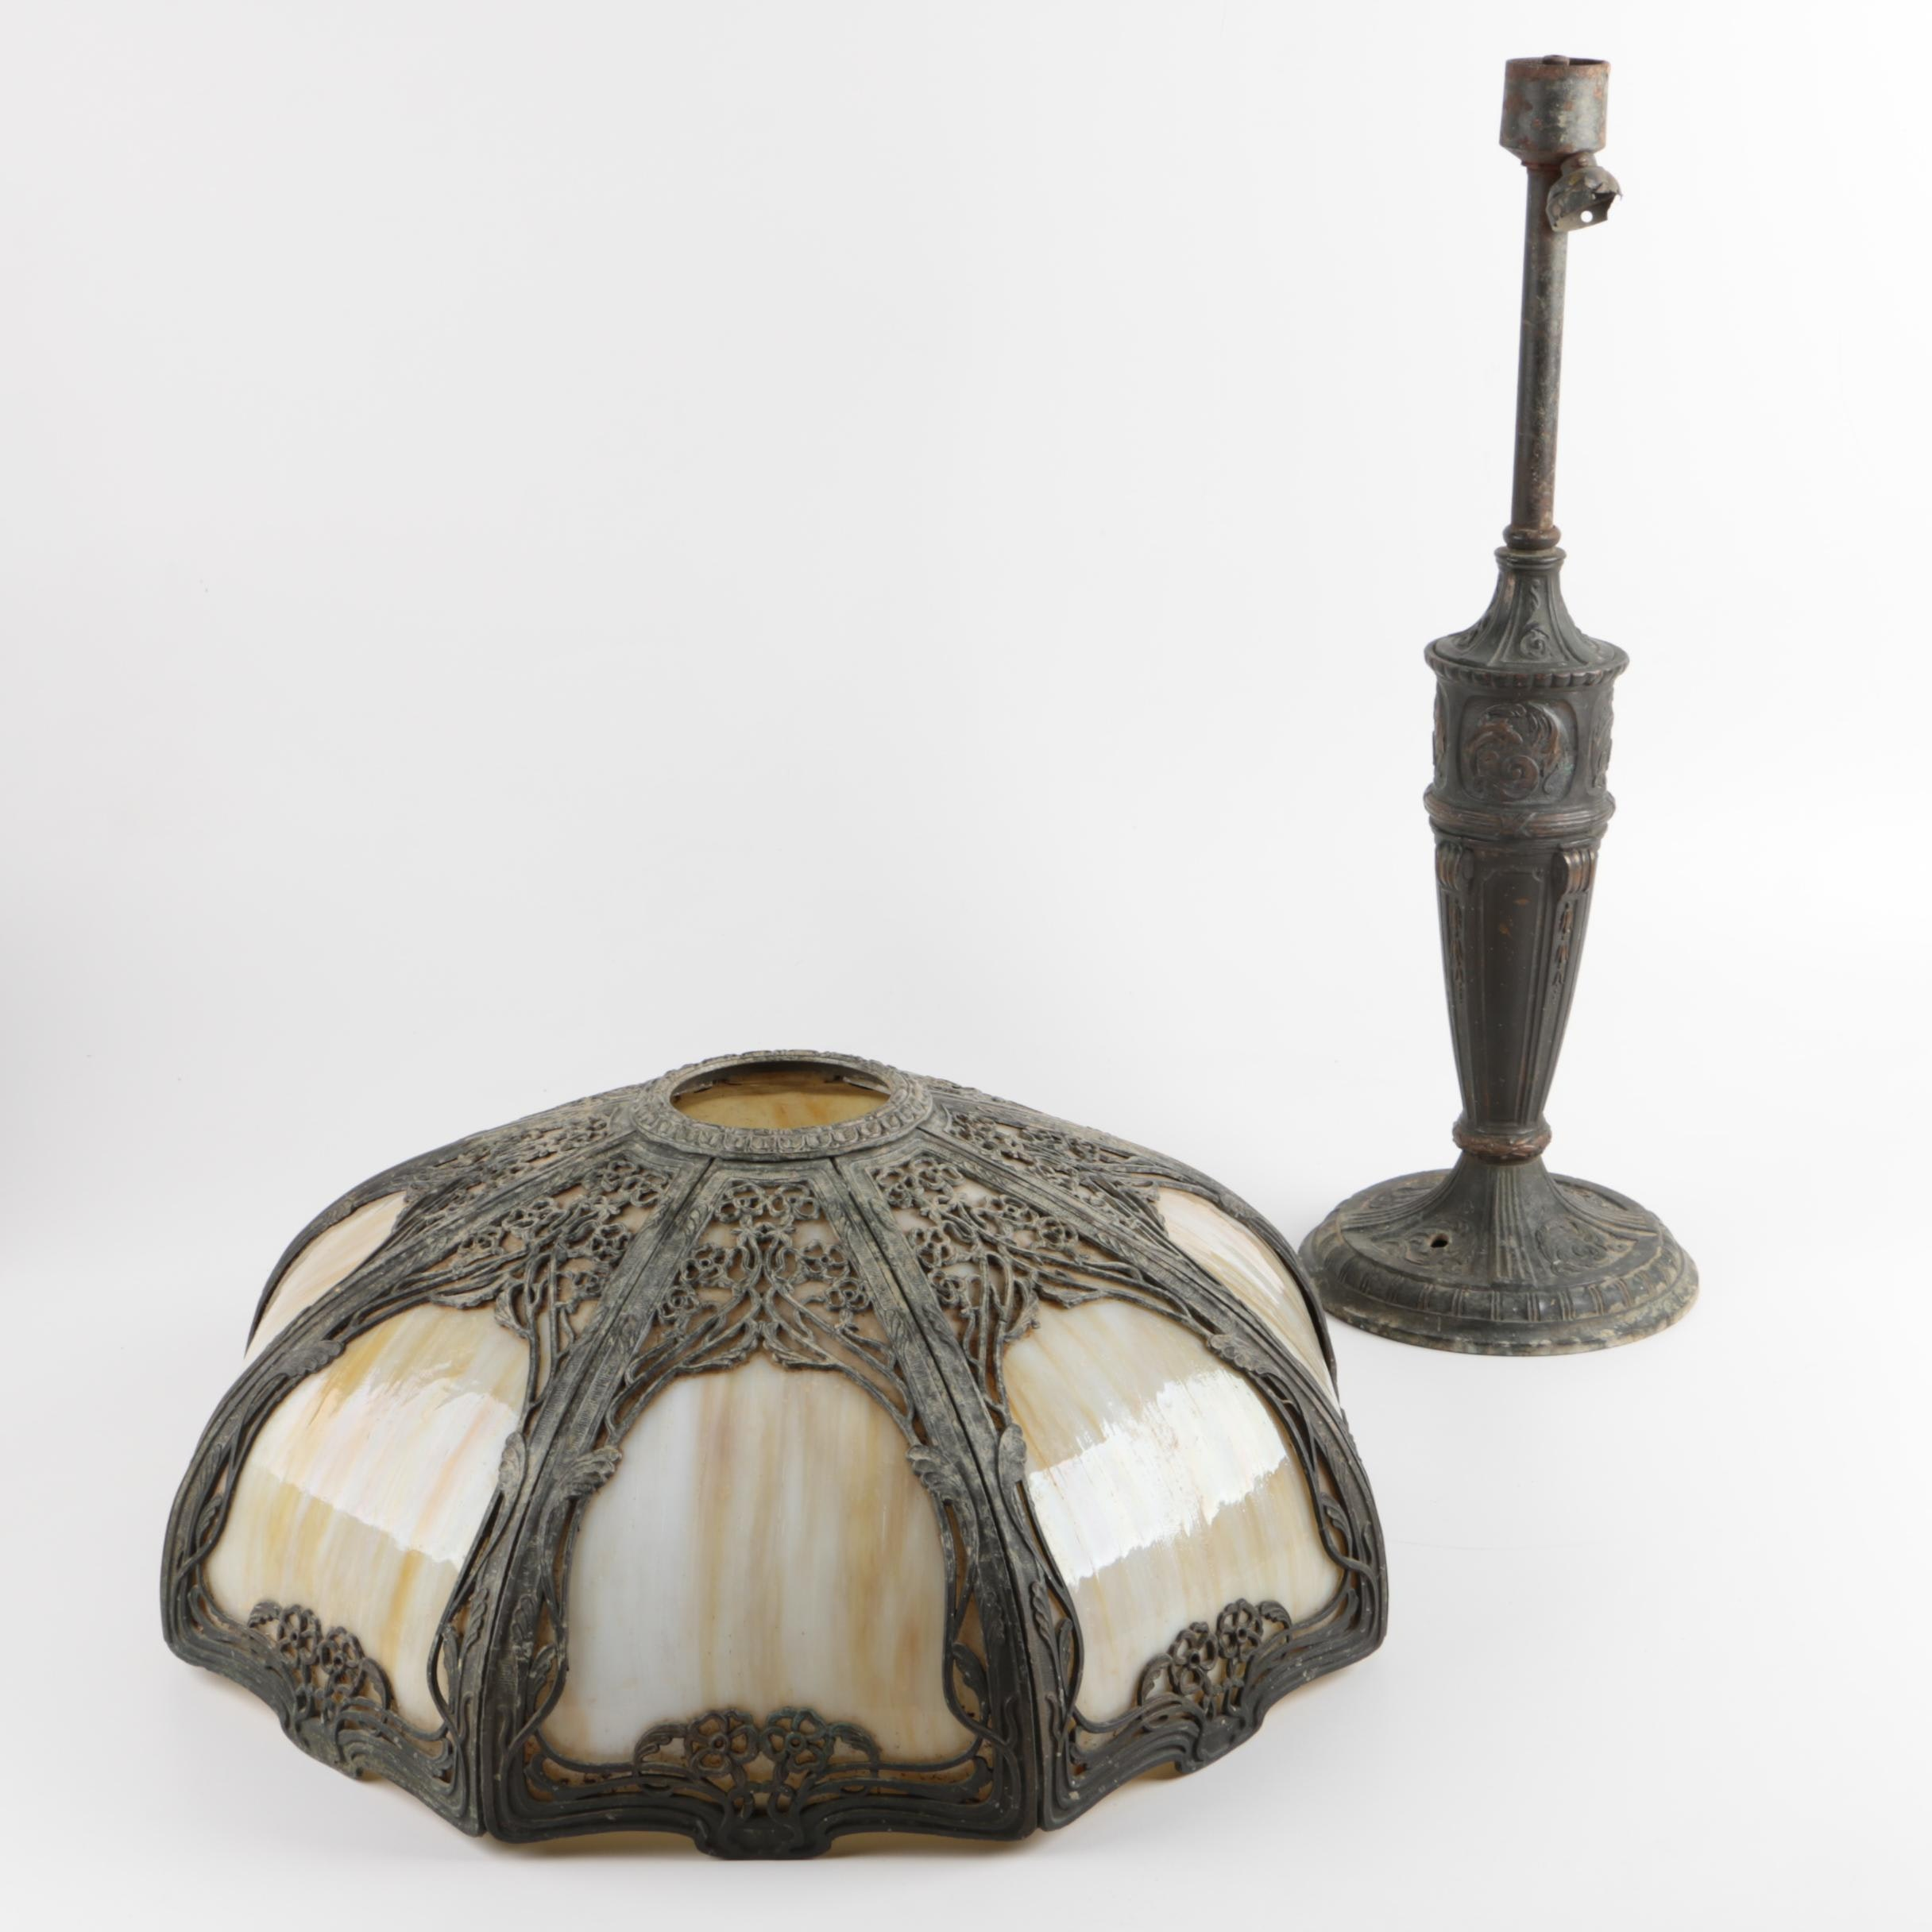 Art Nouveau Lamp with Shade